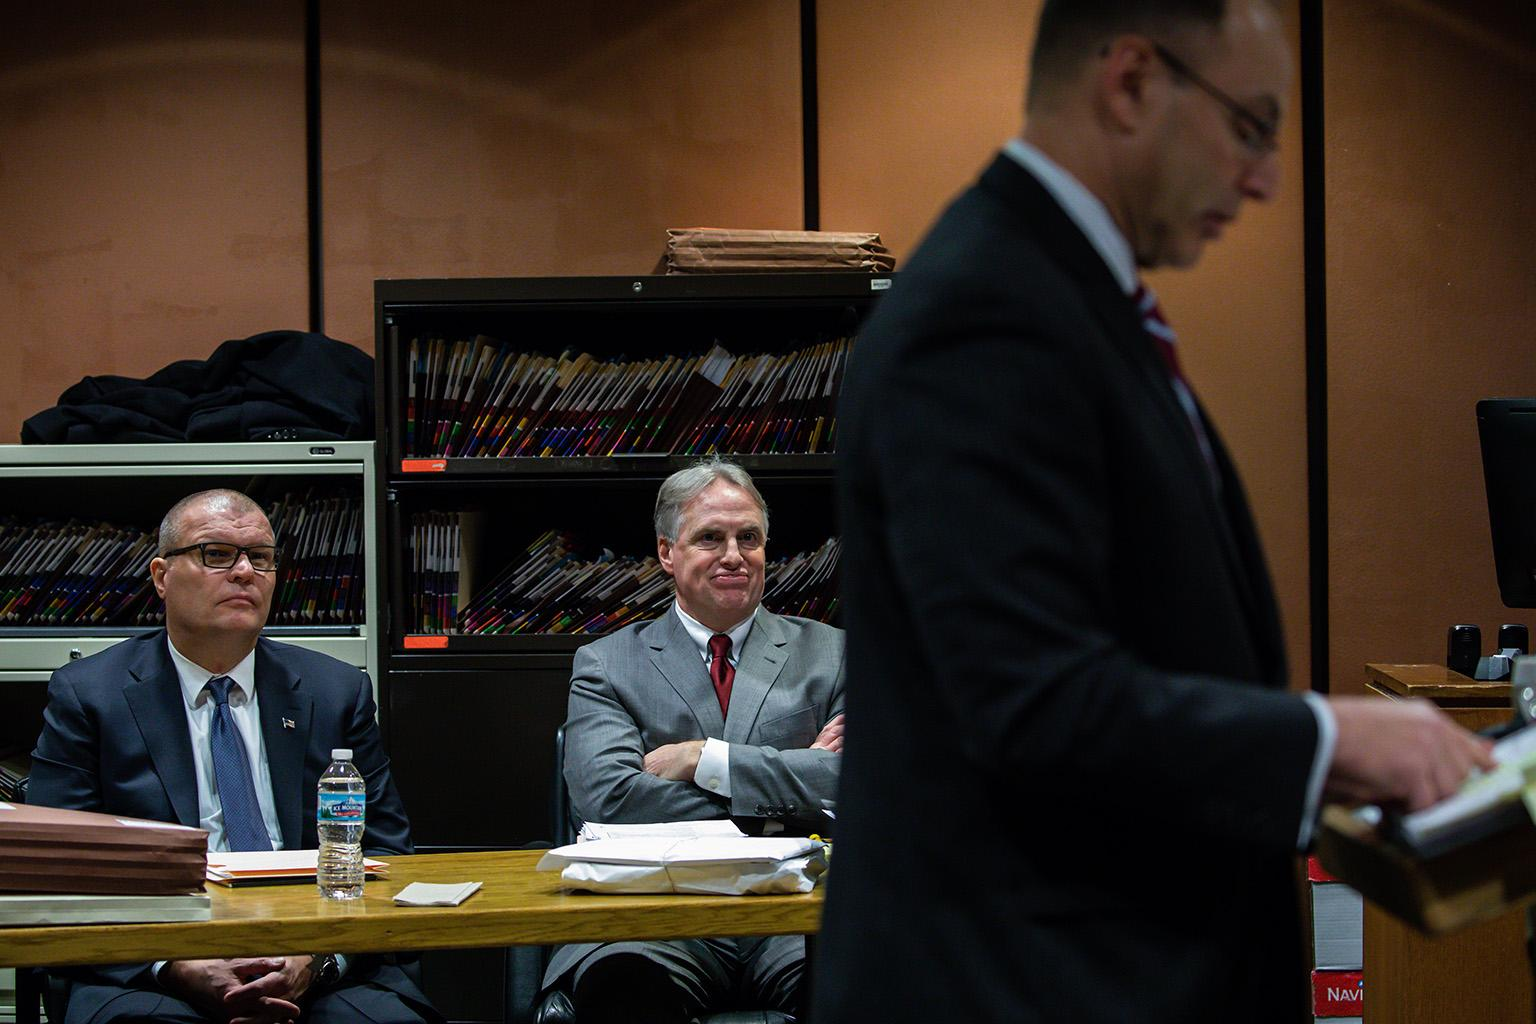 Former Detective David March, left, and his attorney James McKay look on as assistant special prosecutor Ron Safer addresses the court on Thursday, Nov. 29, 2018. (Zbigniew Bzdak / Chicago Tribune / Pool)